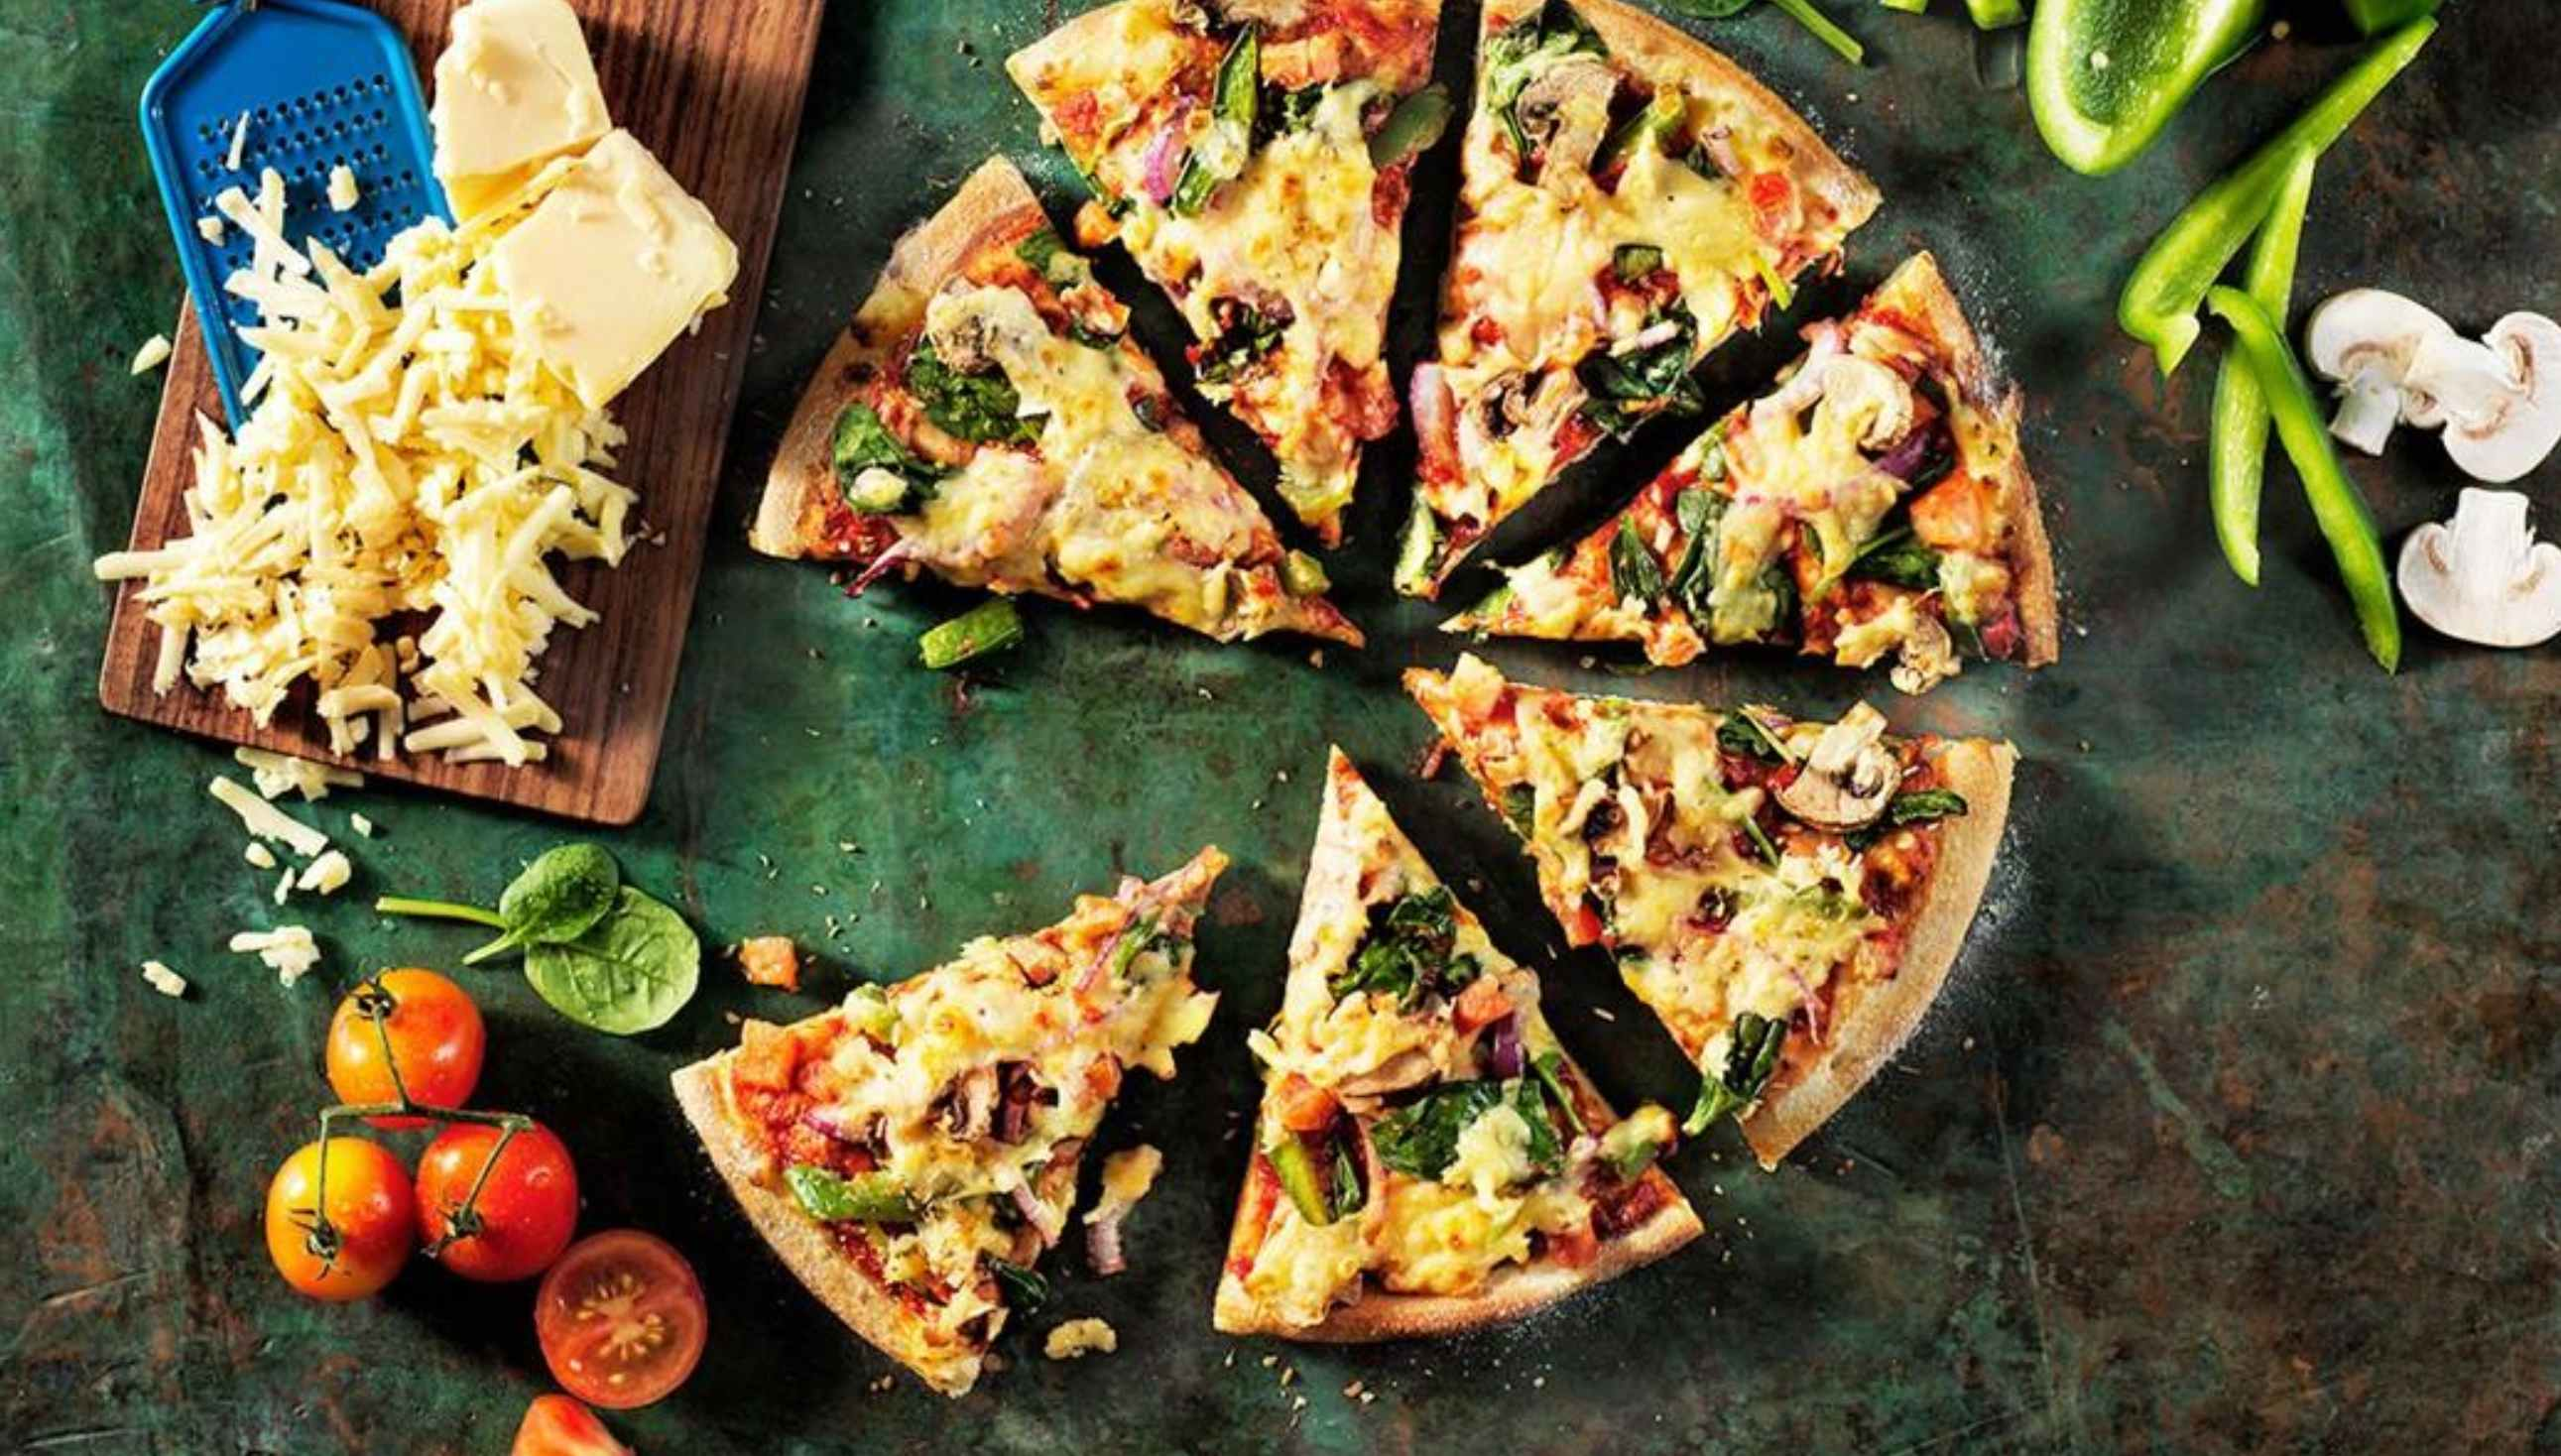 Pizza with vegan cheese from Domino's New Zealand